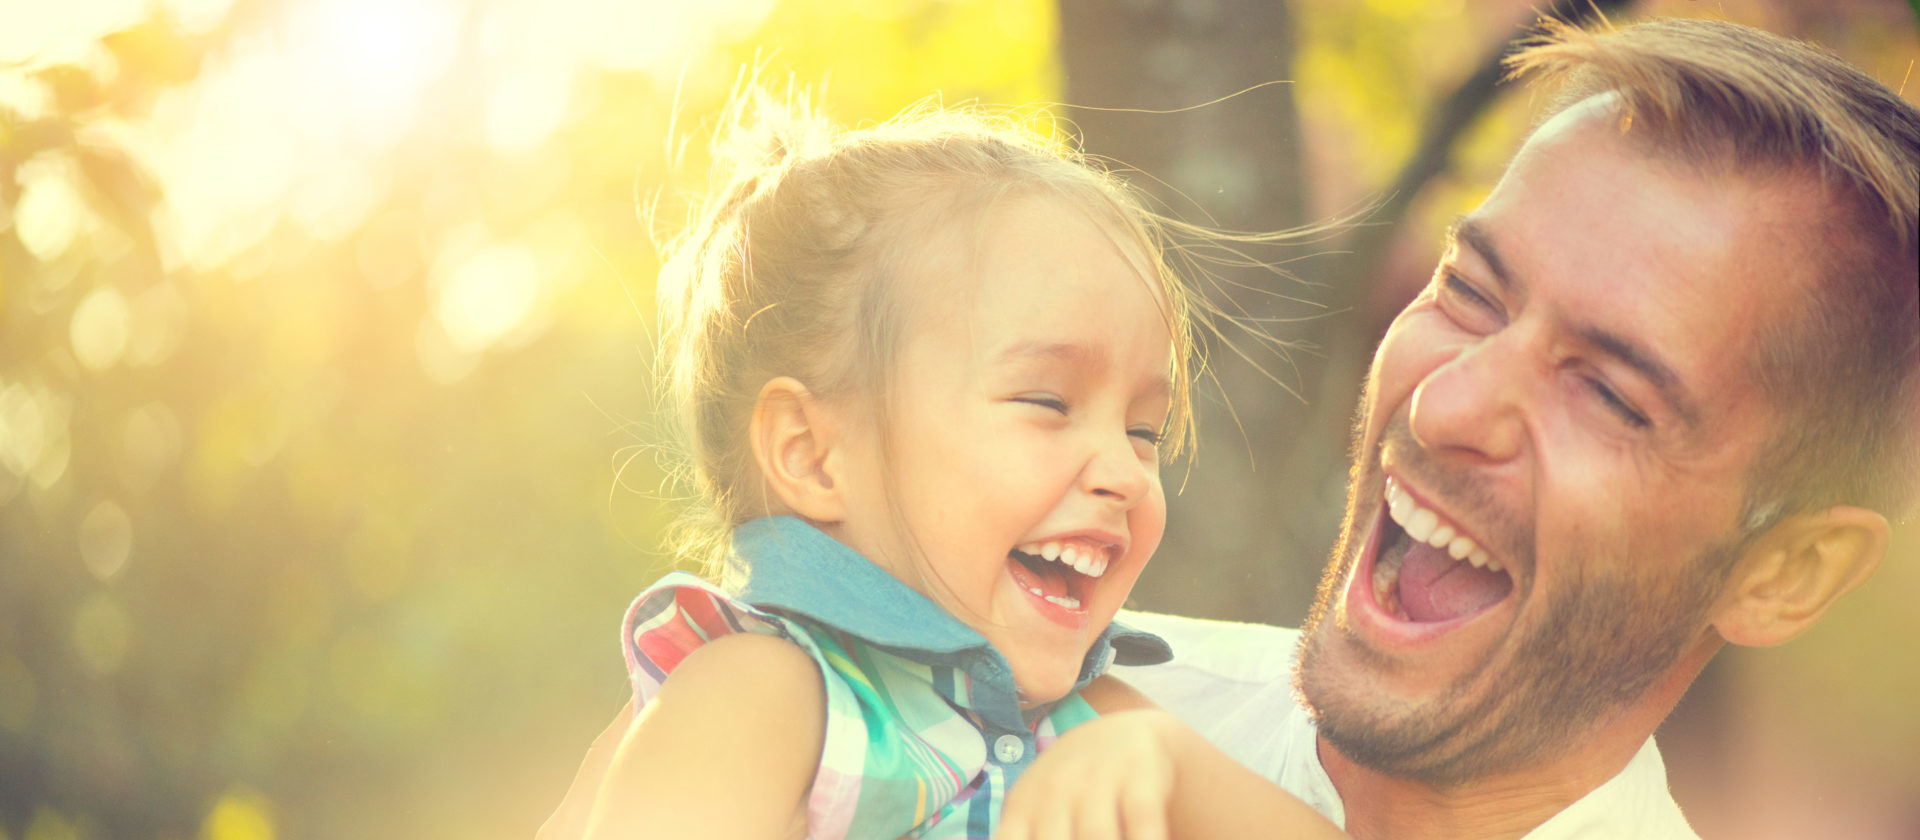 A man laughs with his daughter in this close up image.